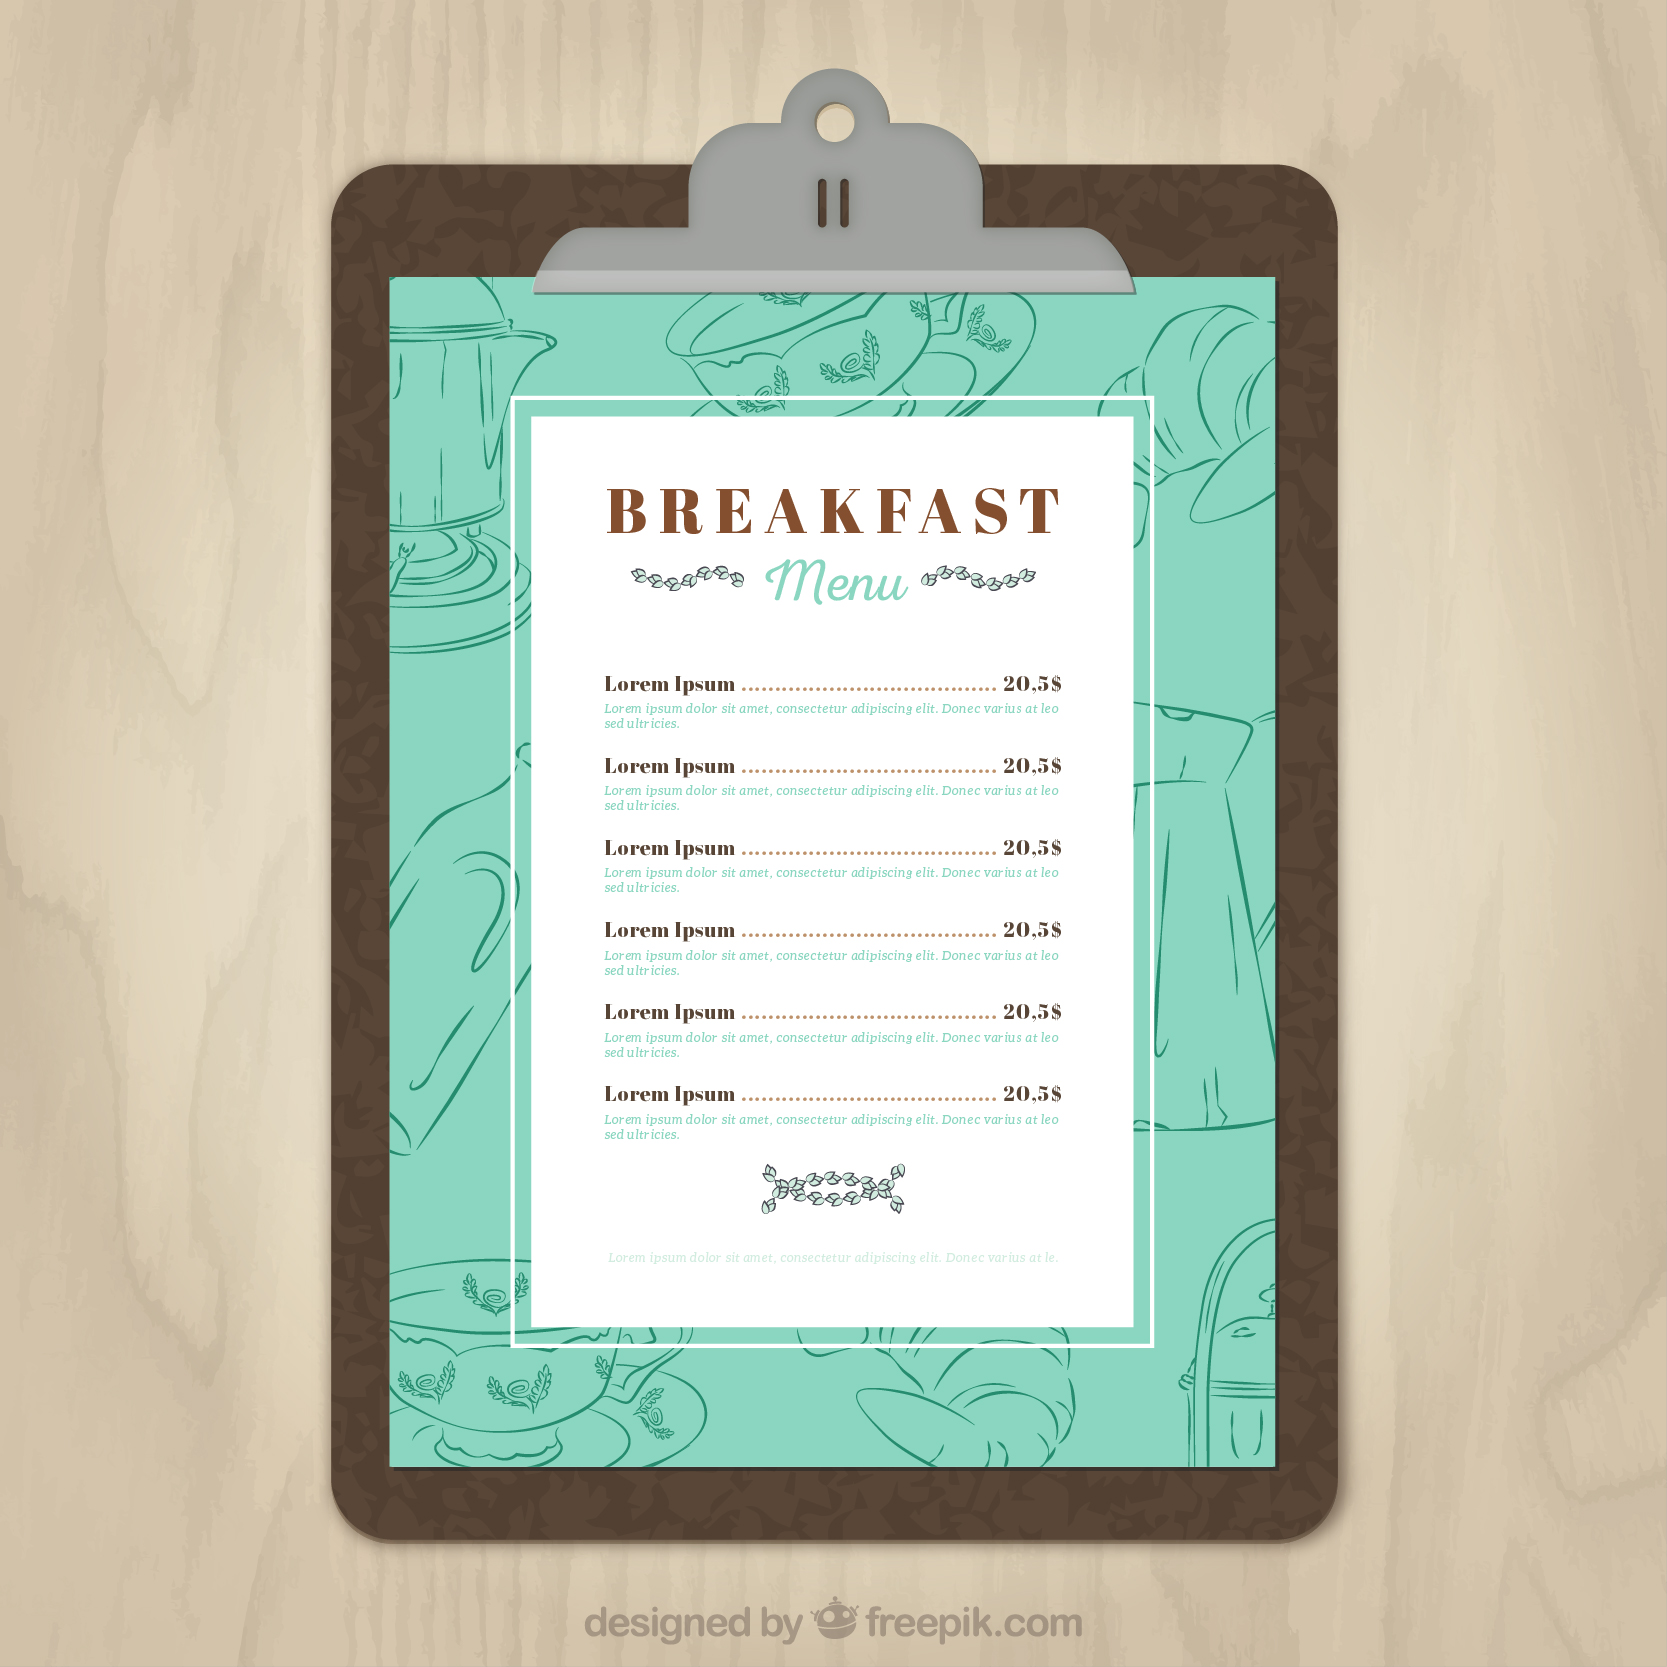 11 free sample breakfast menu templates printable samples. Black Bedroom Furniture Sets. Home Design Ideas